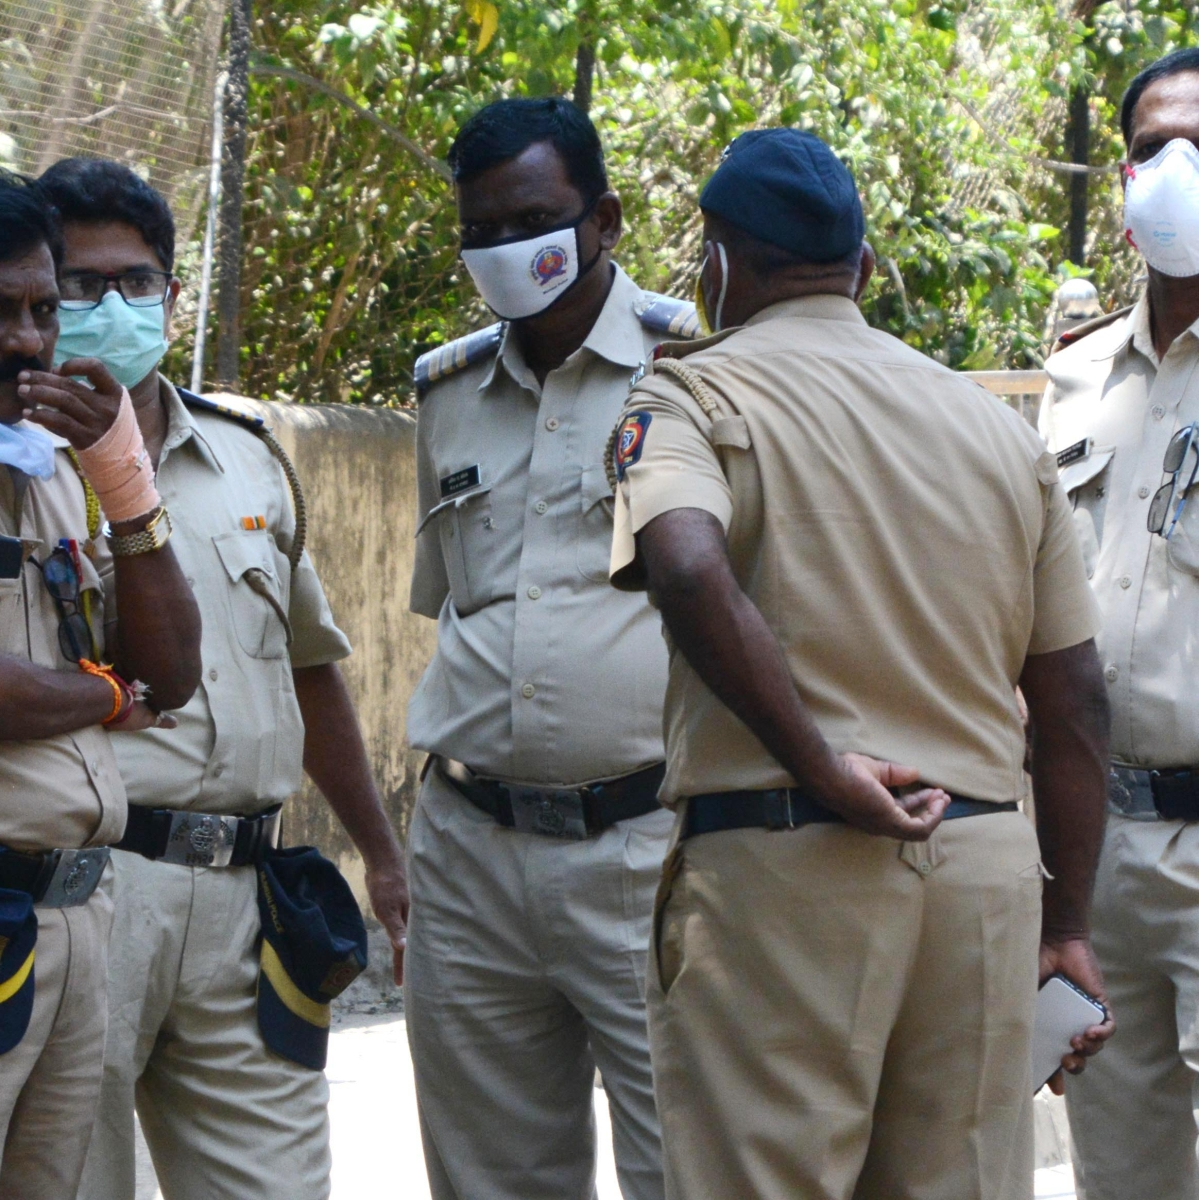 Good news for Thane as 184 police and SRPF personnel recover from COVID-19